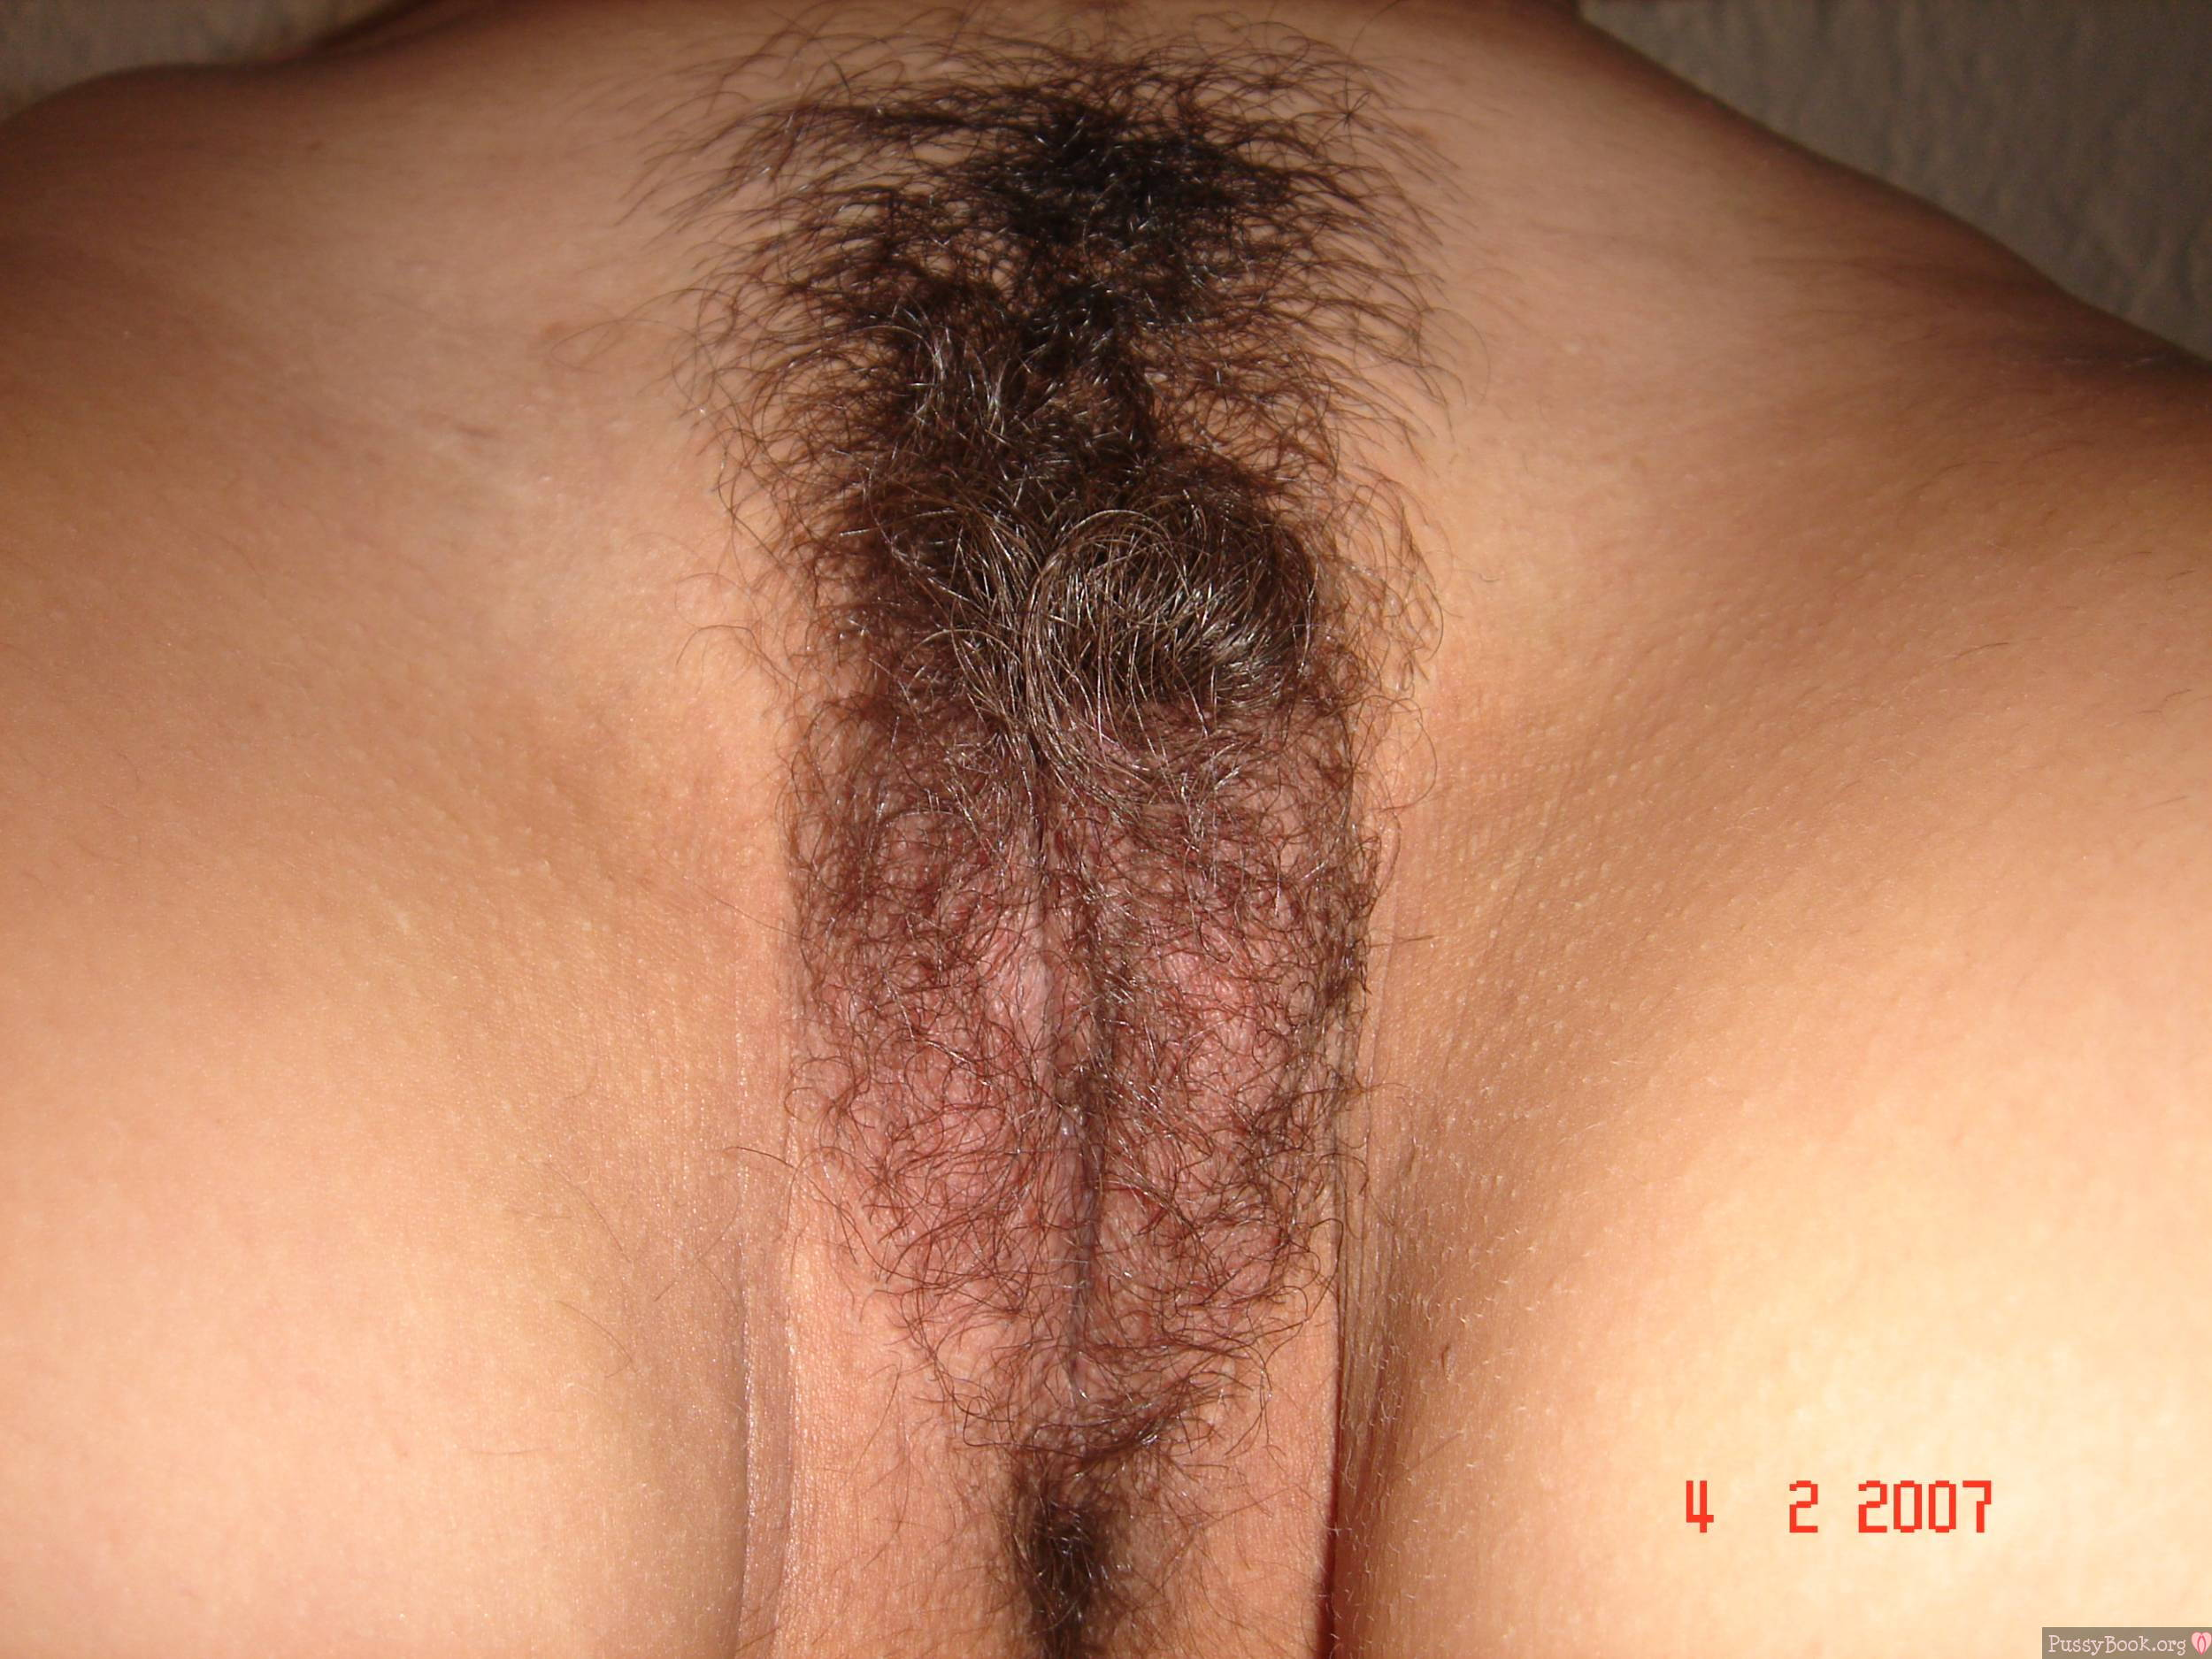 pics of naked girl with pubic hair